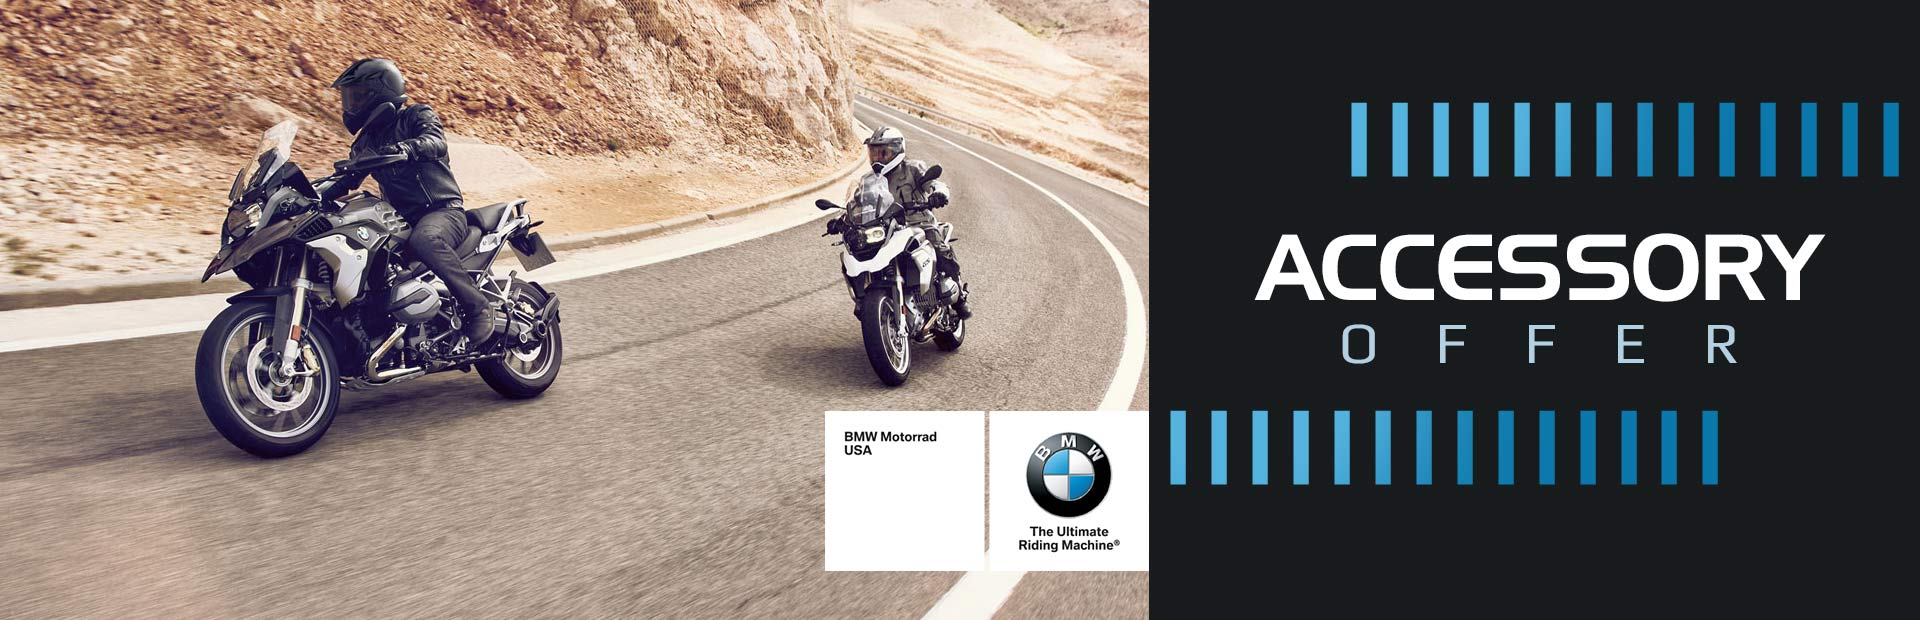 BMW: Accessory Offer